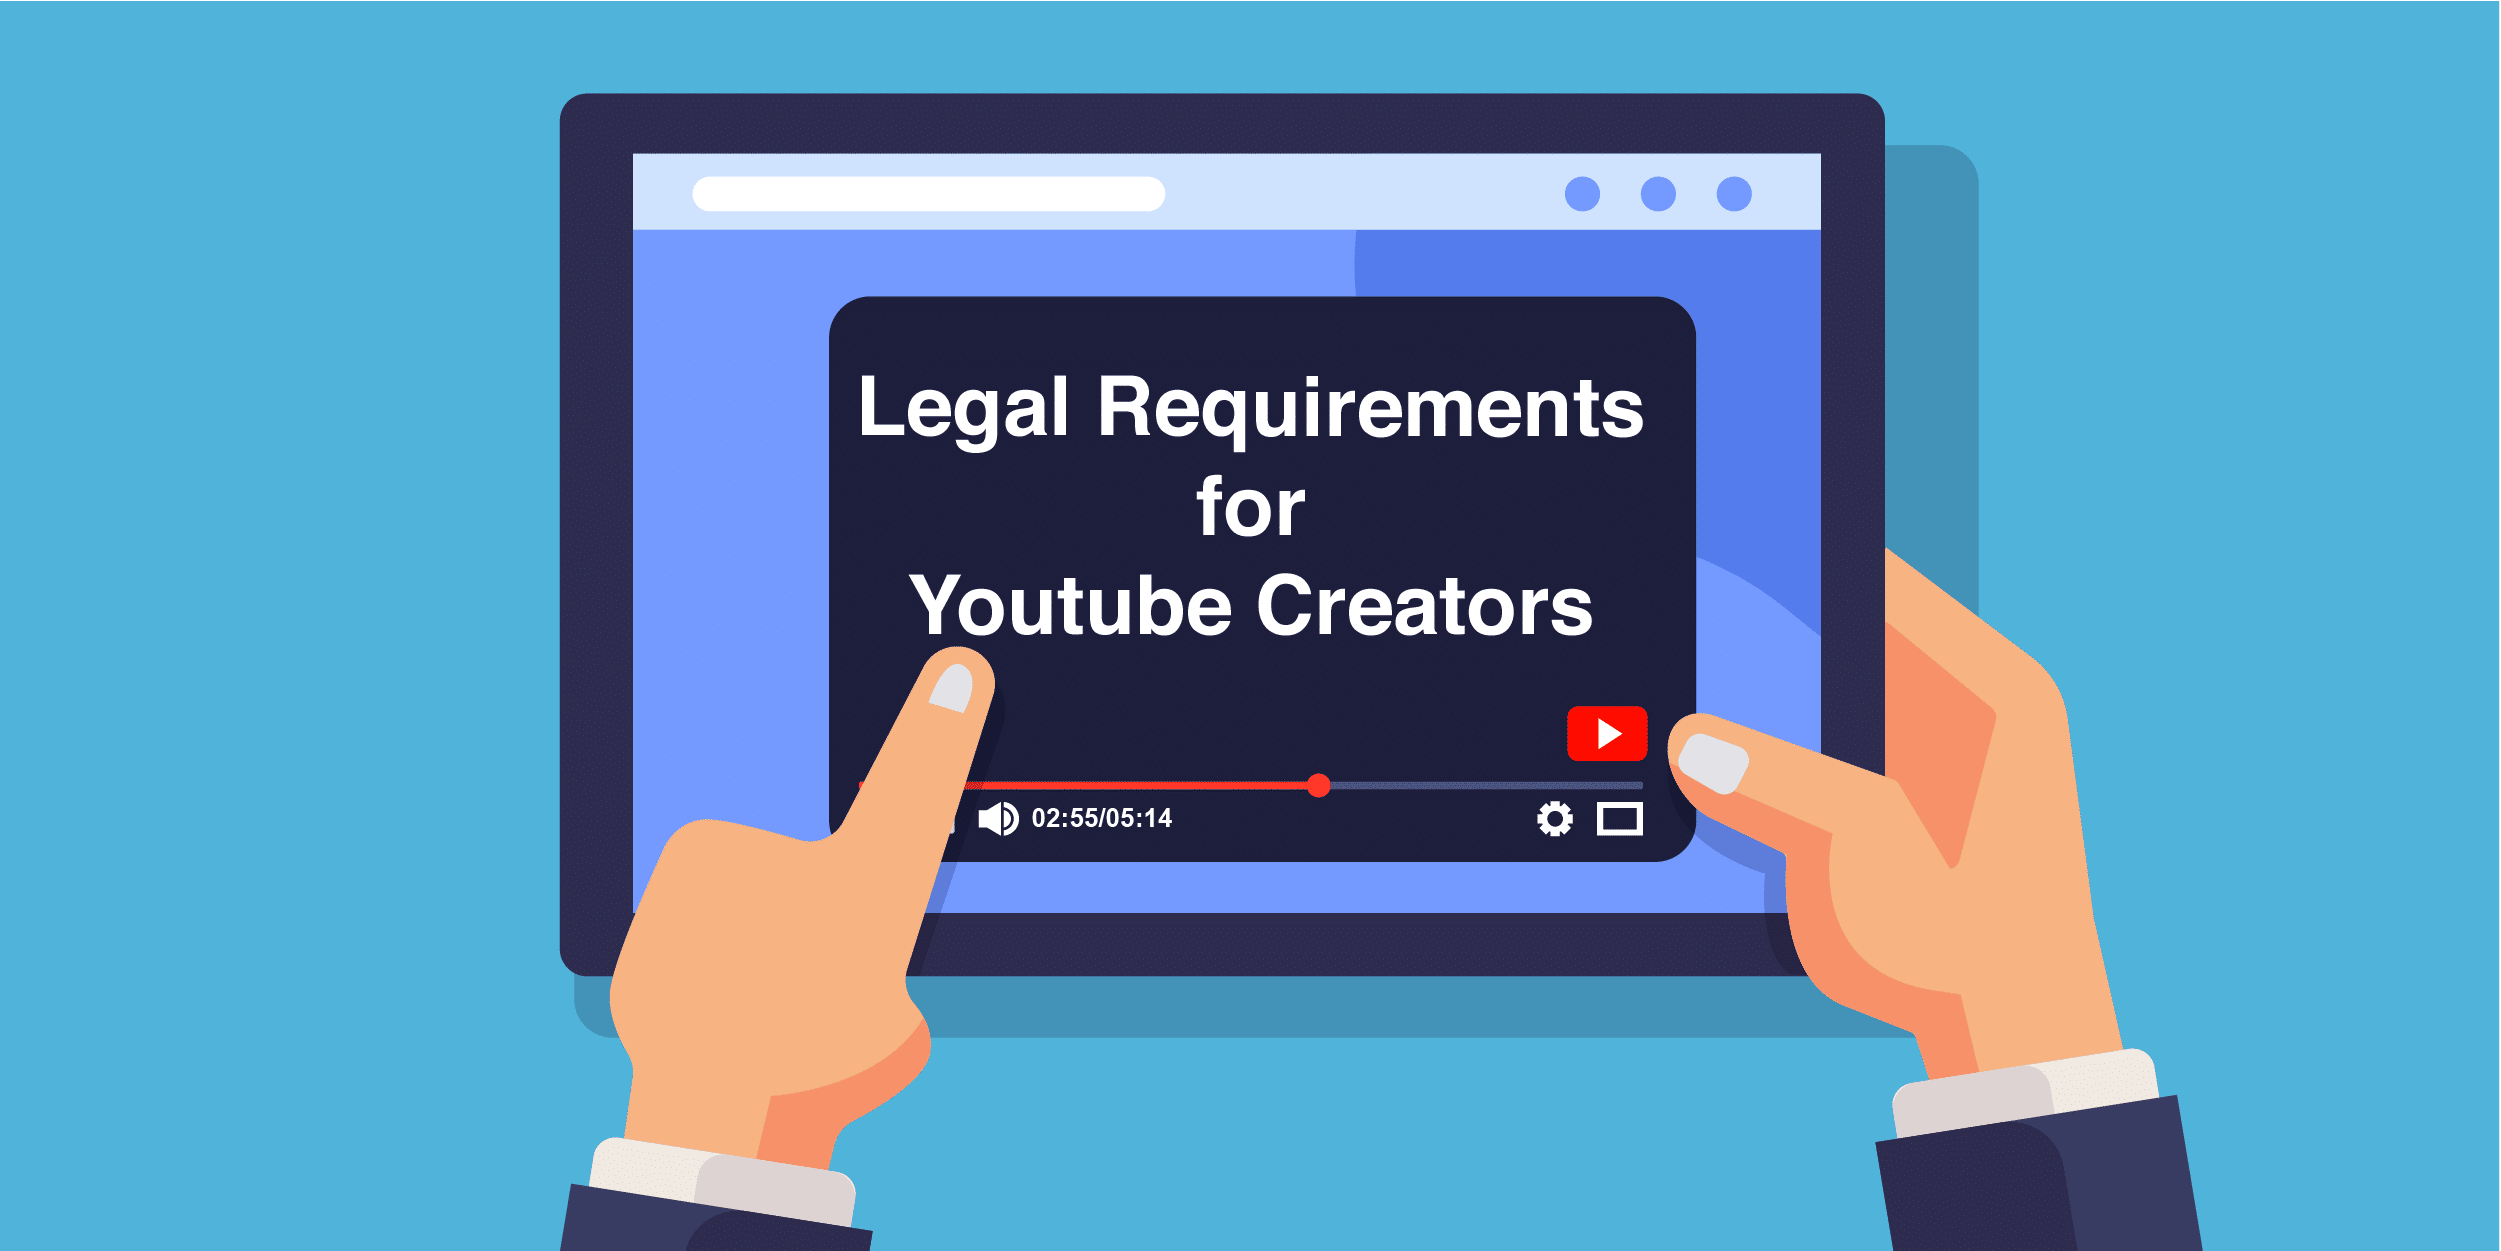 Legal Requirements for YouTube Creators